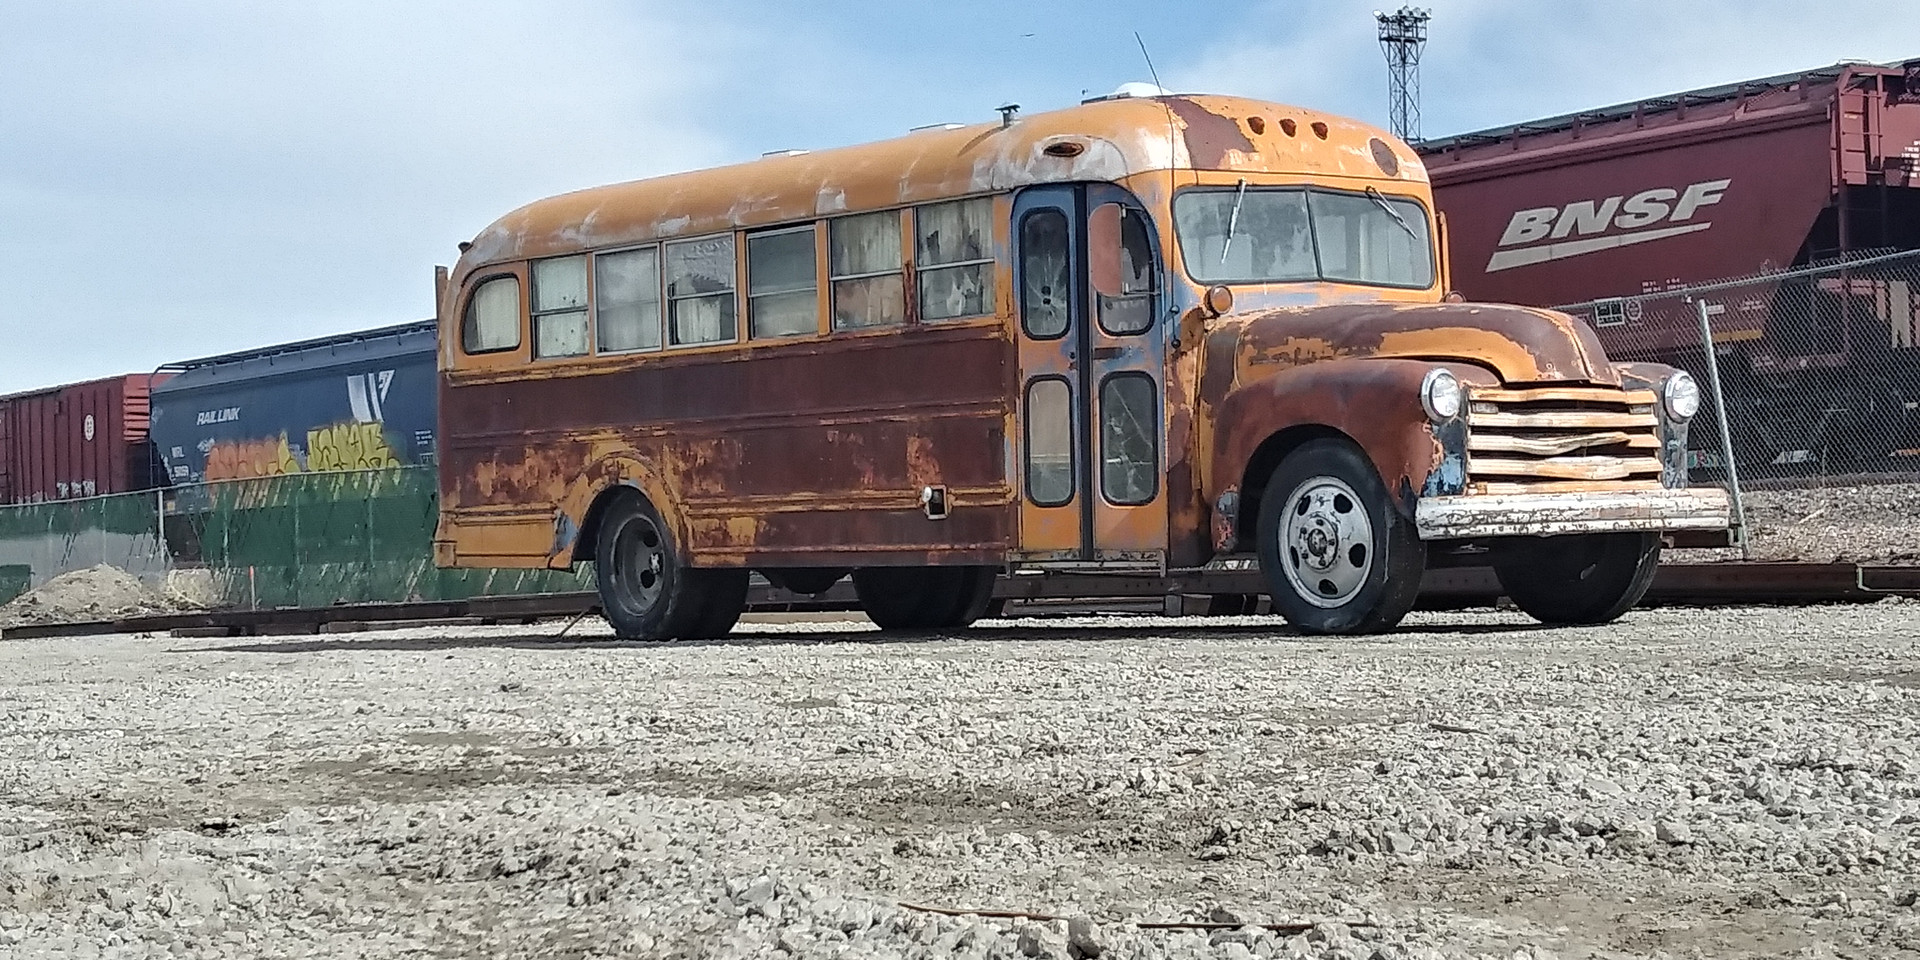 1951 Chevy Cool Bus